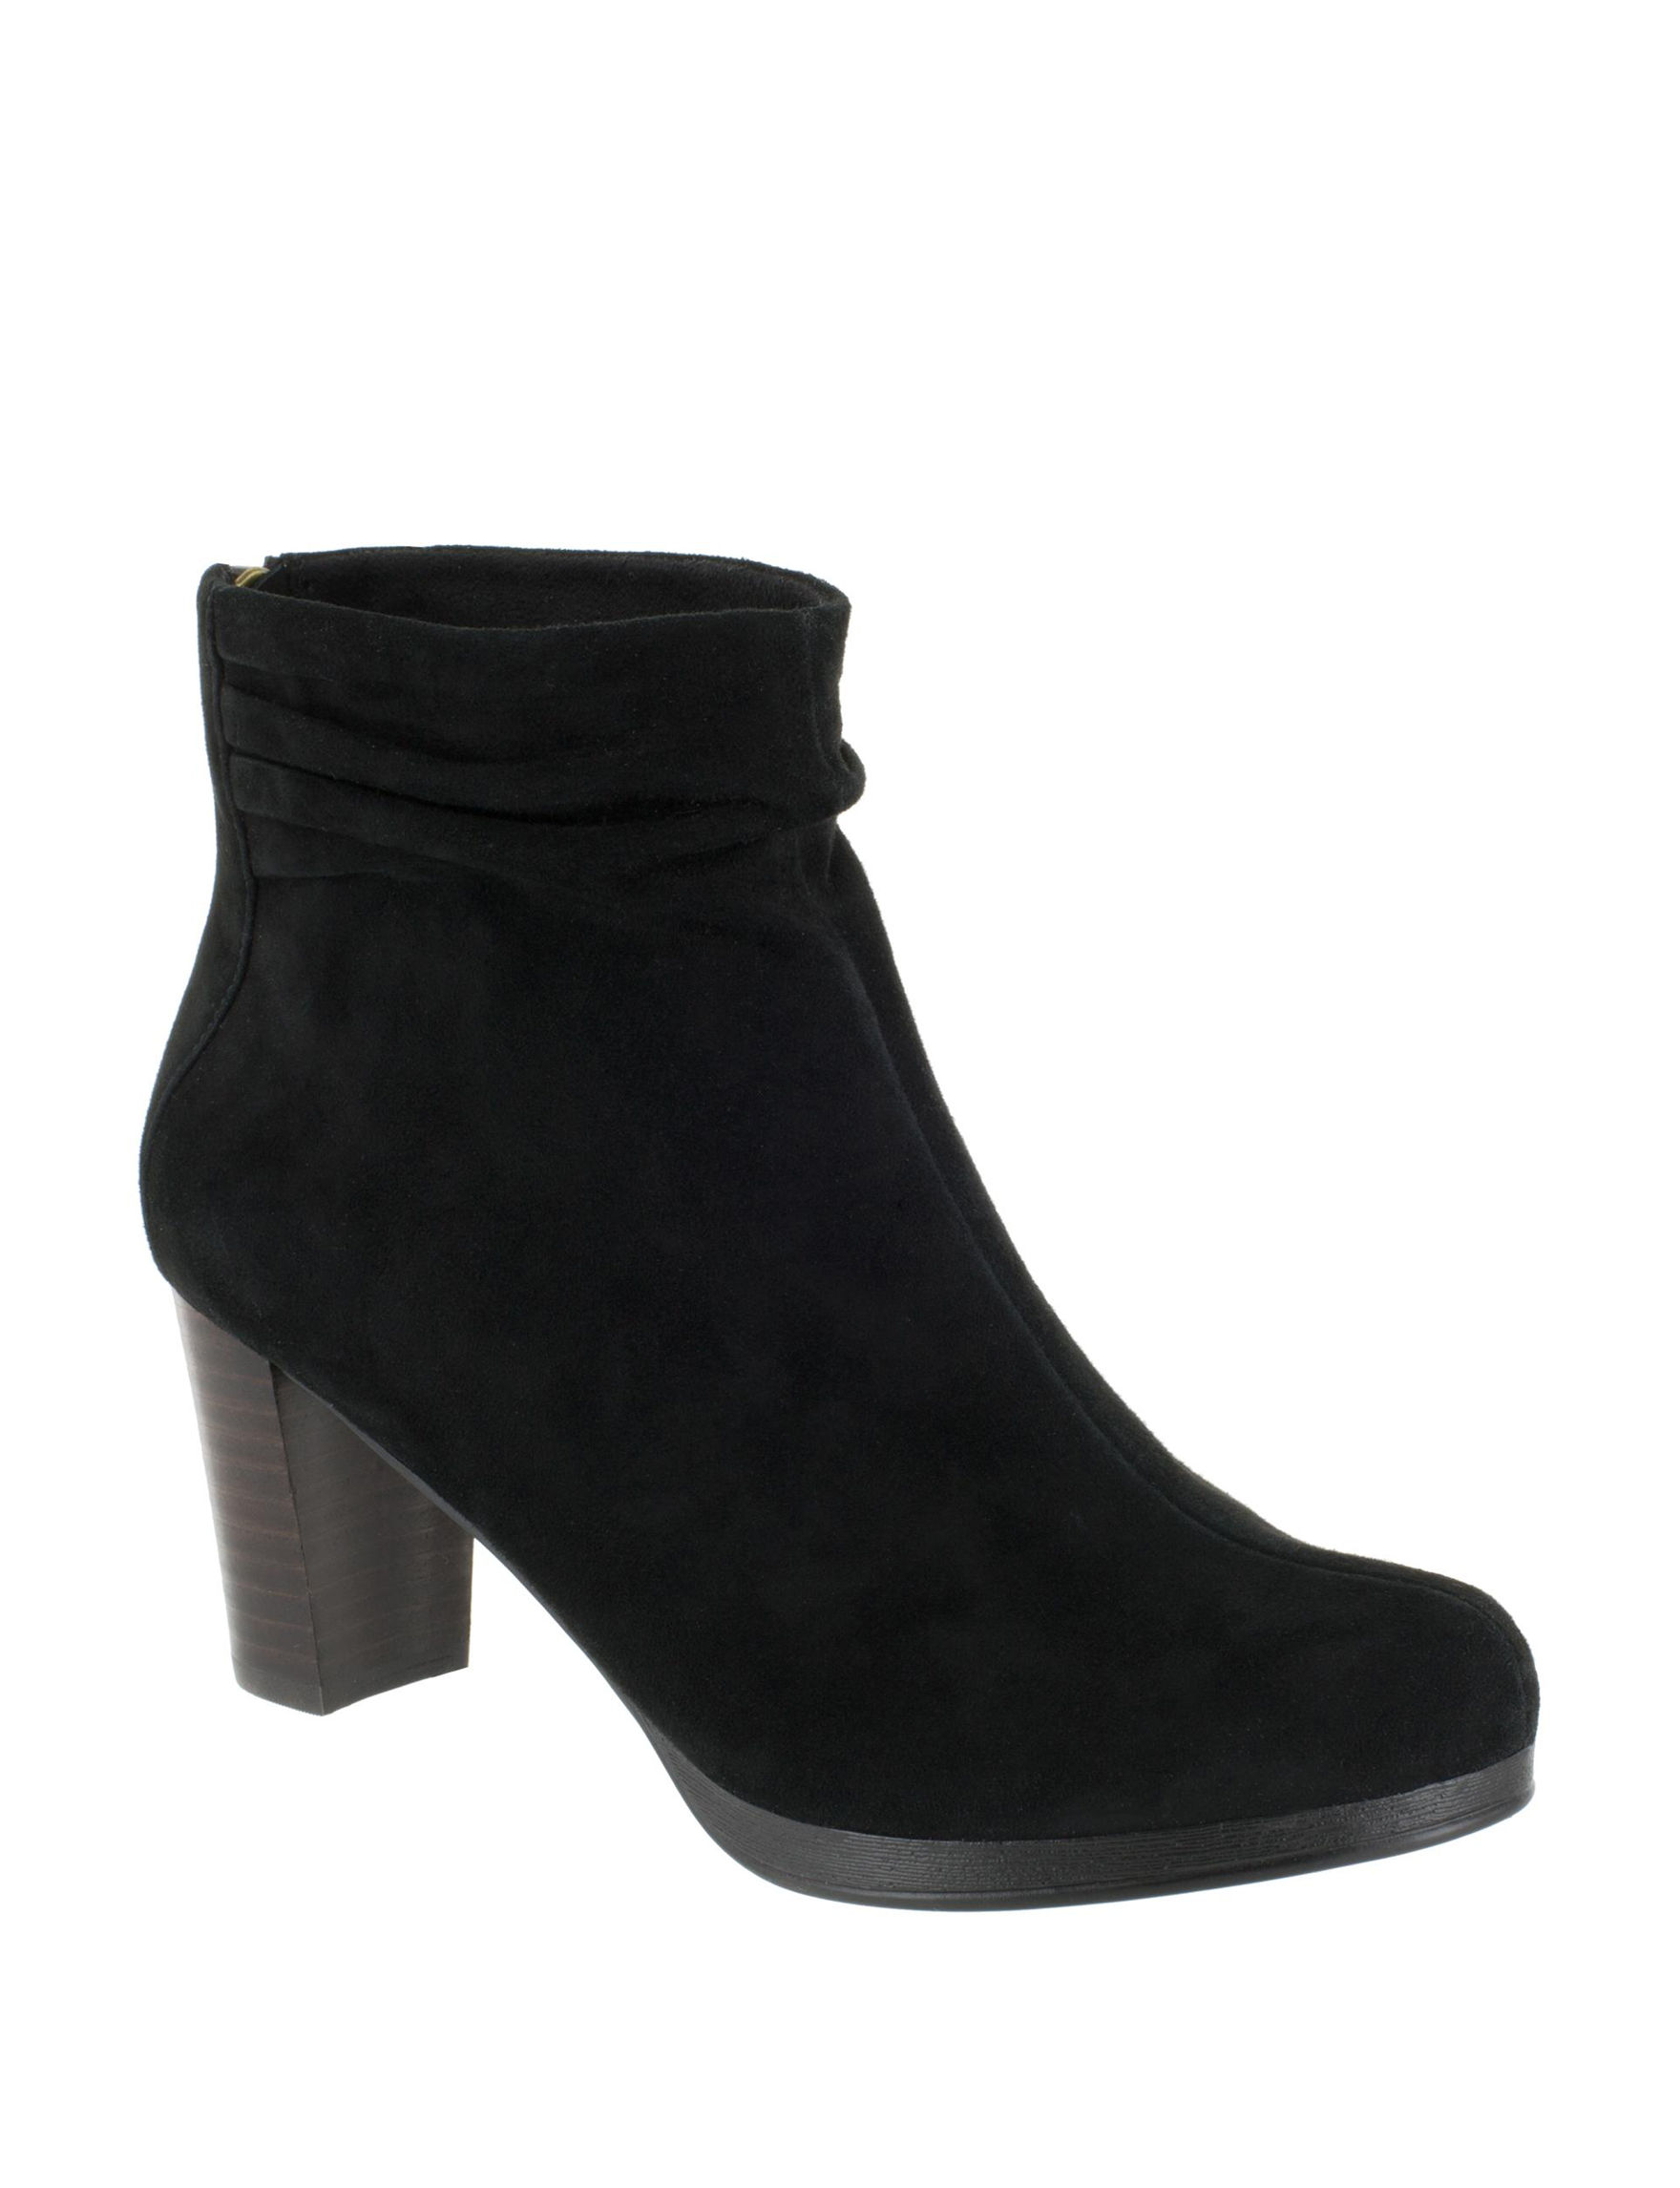 Bella Vita Black Suede Ankle Boots & Booties